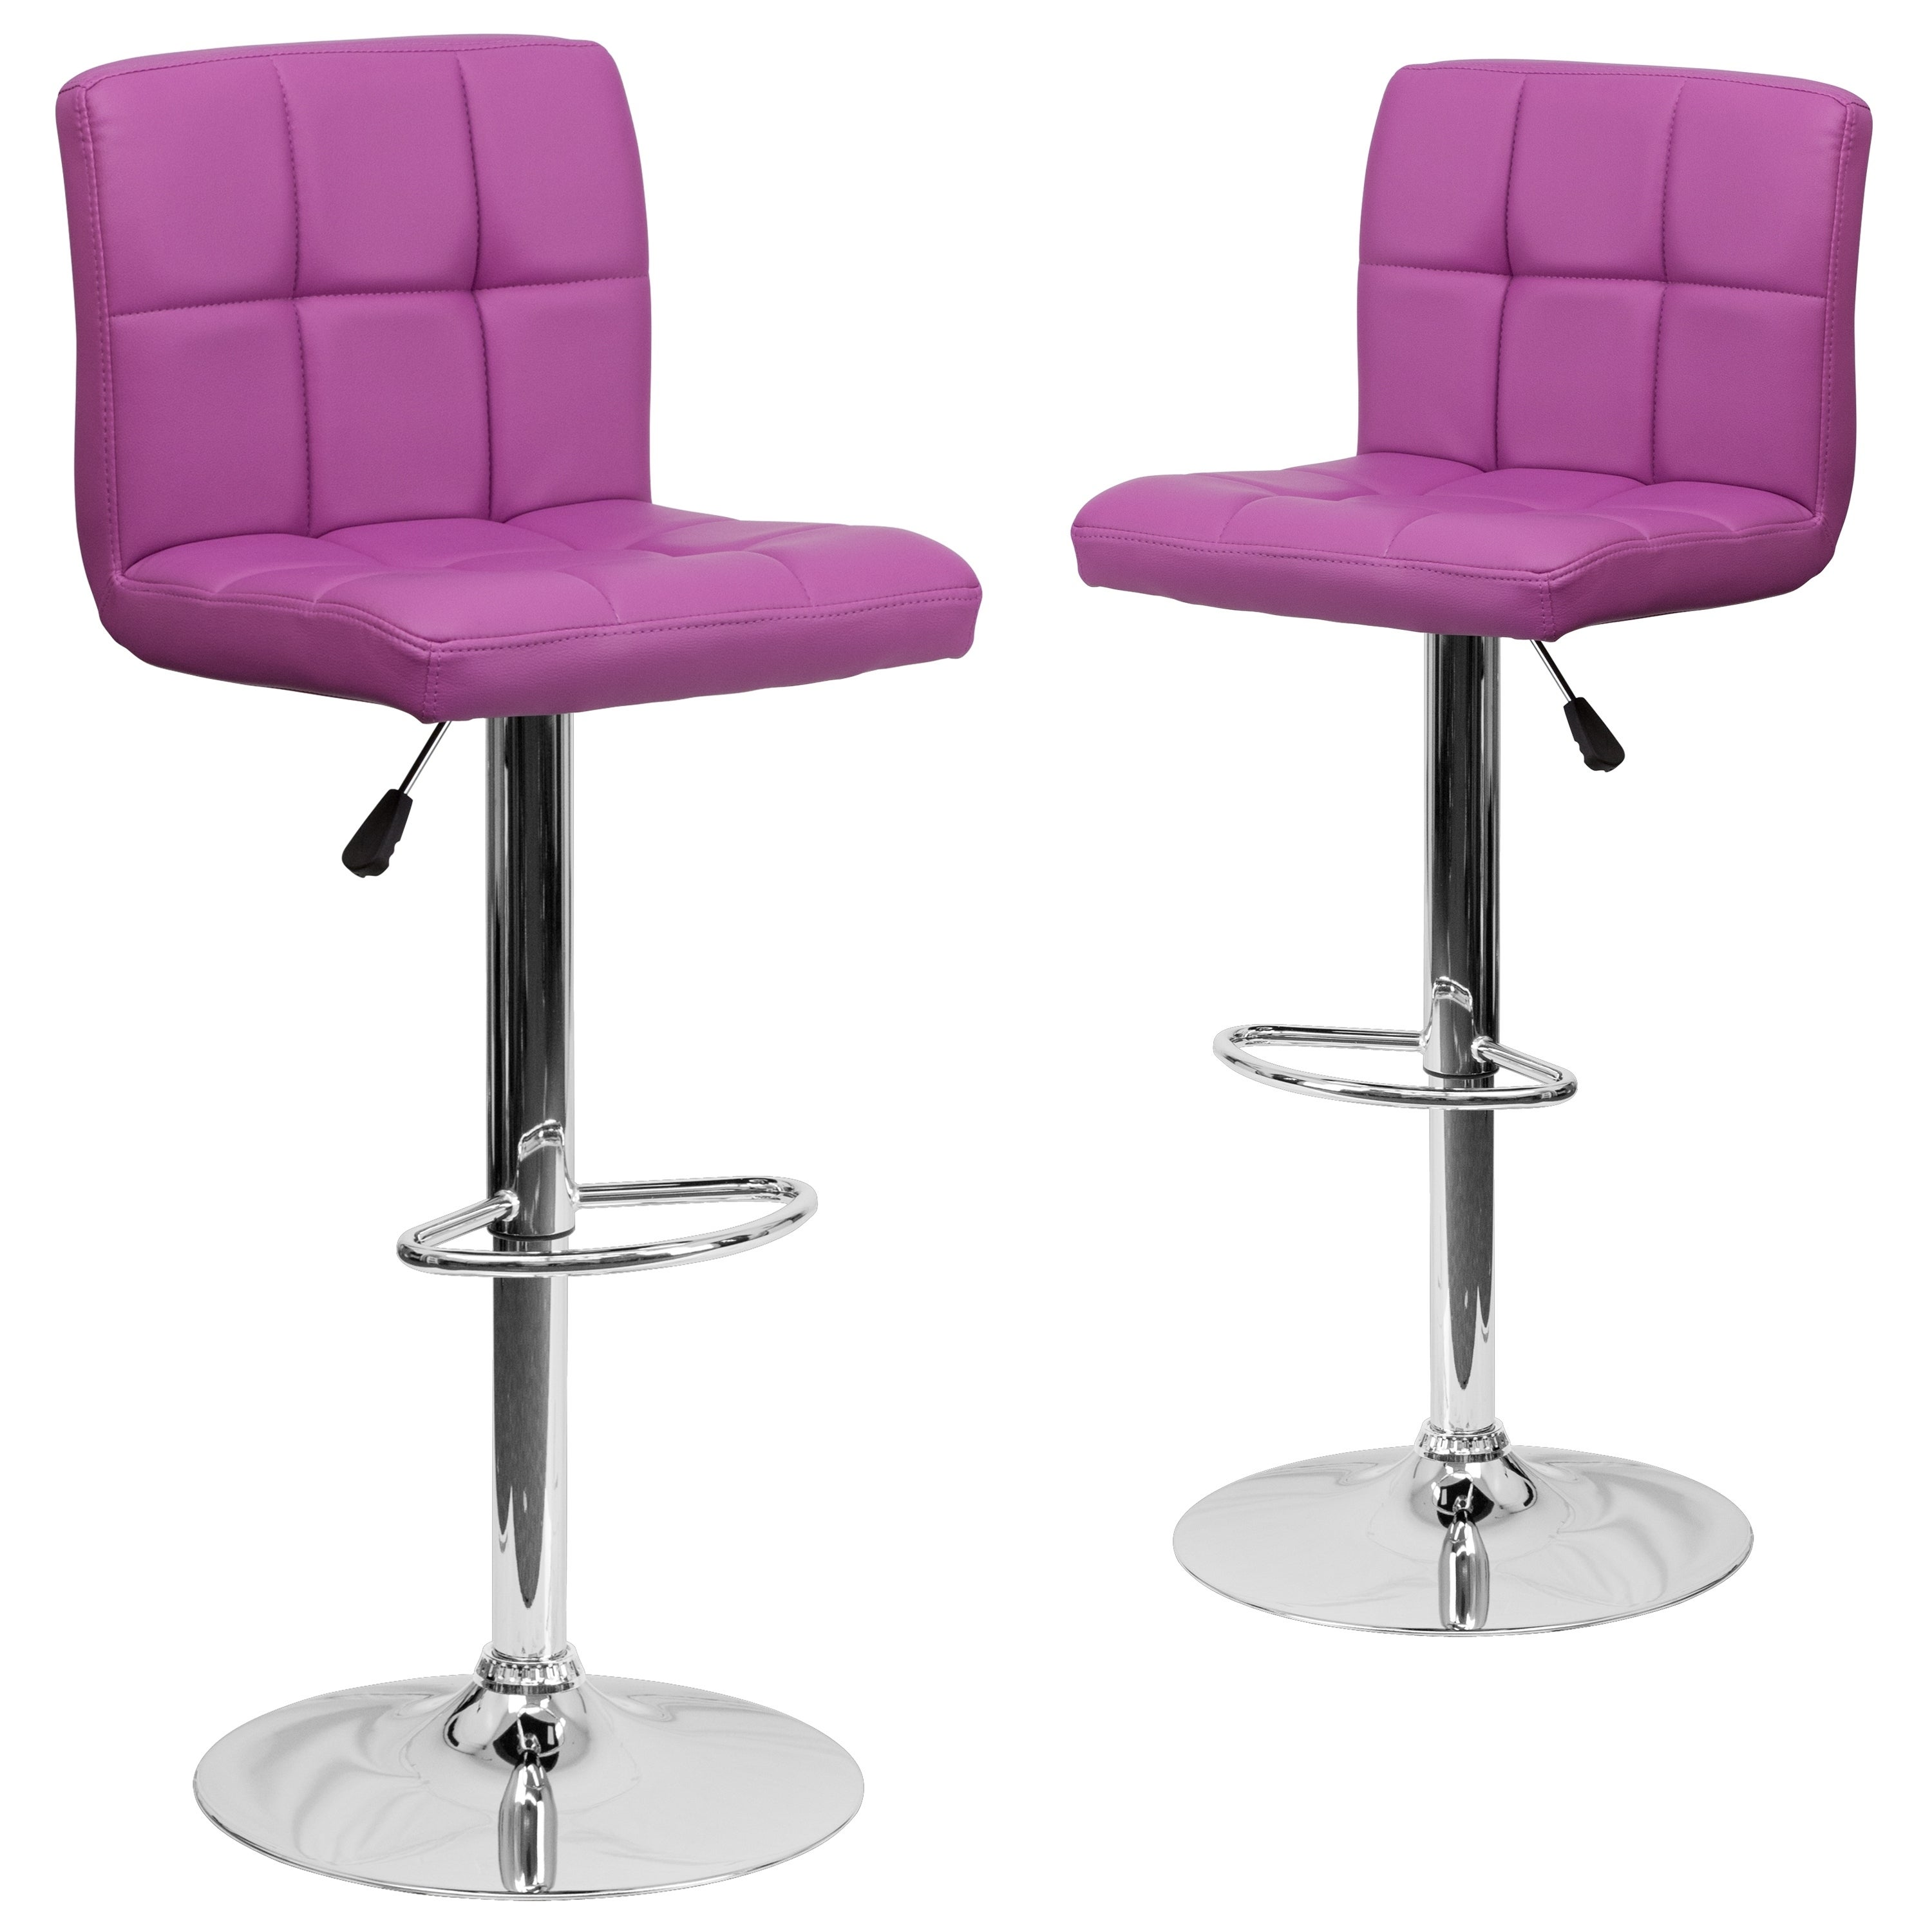 Shop 2 pk contemporary quilted vinyl adjustable height barstool with chrome base free shipping today overstock com 9375169